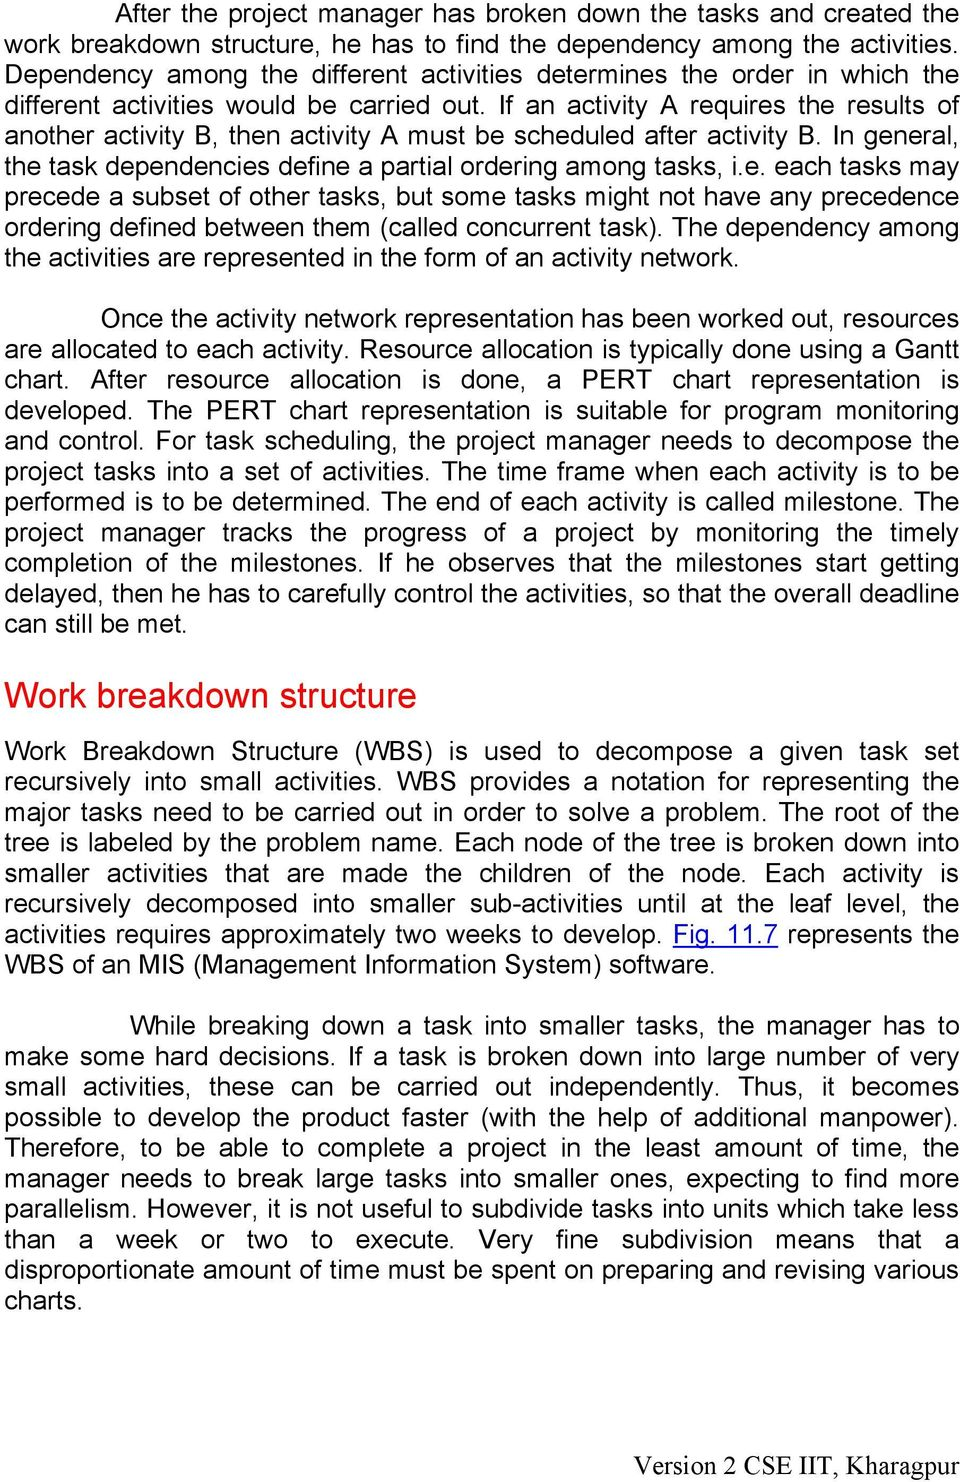 If an activity A requires the results of another activity B, then activity A must be scheduled after activity B. In general, the task dependencies define a partial ordering among tasks, i.e. each tasks may precede a subset of other tasks, but some tasks might not have any precedence ordering defined between them (called concurrent task).